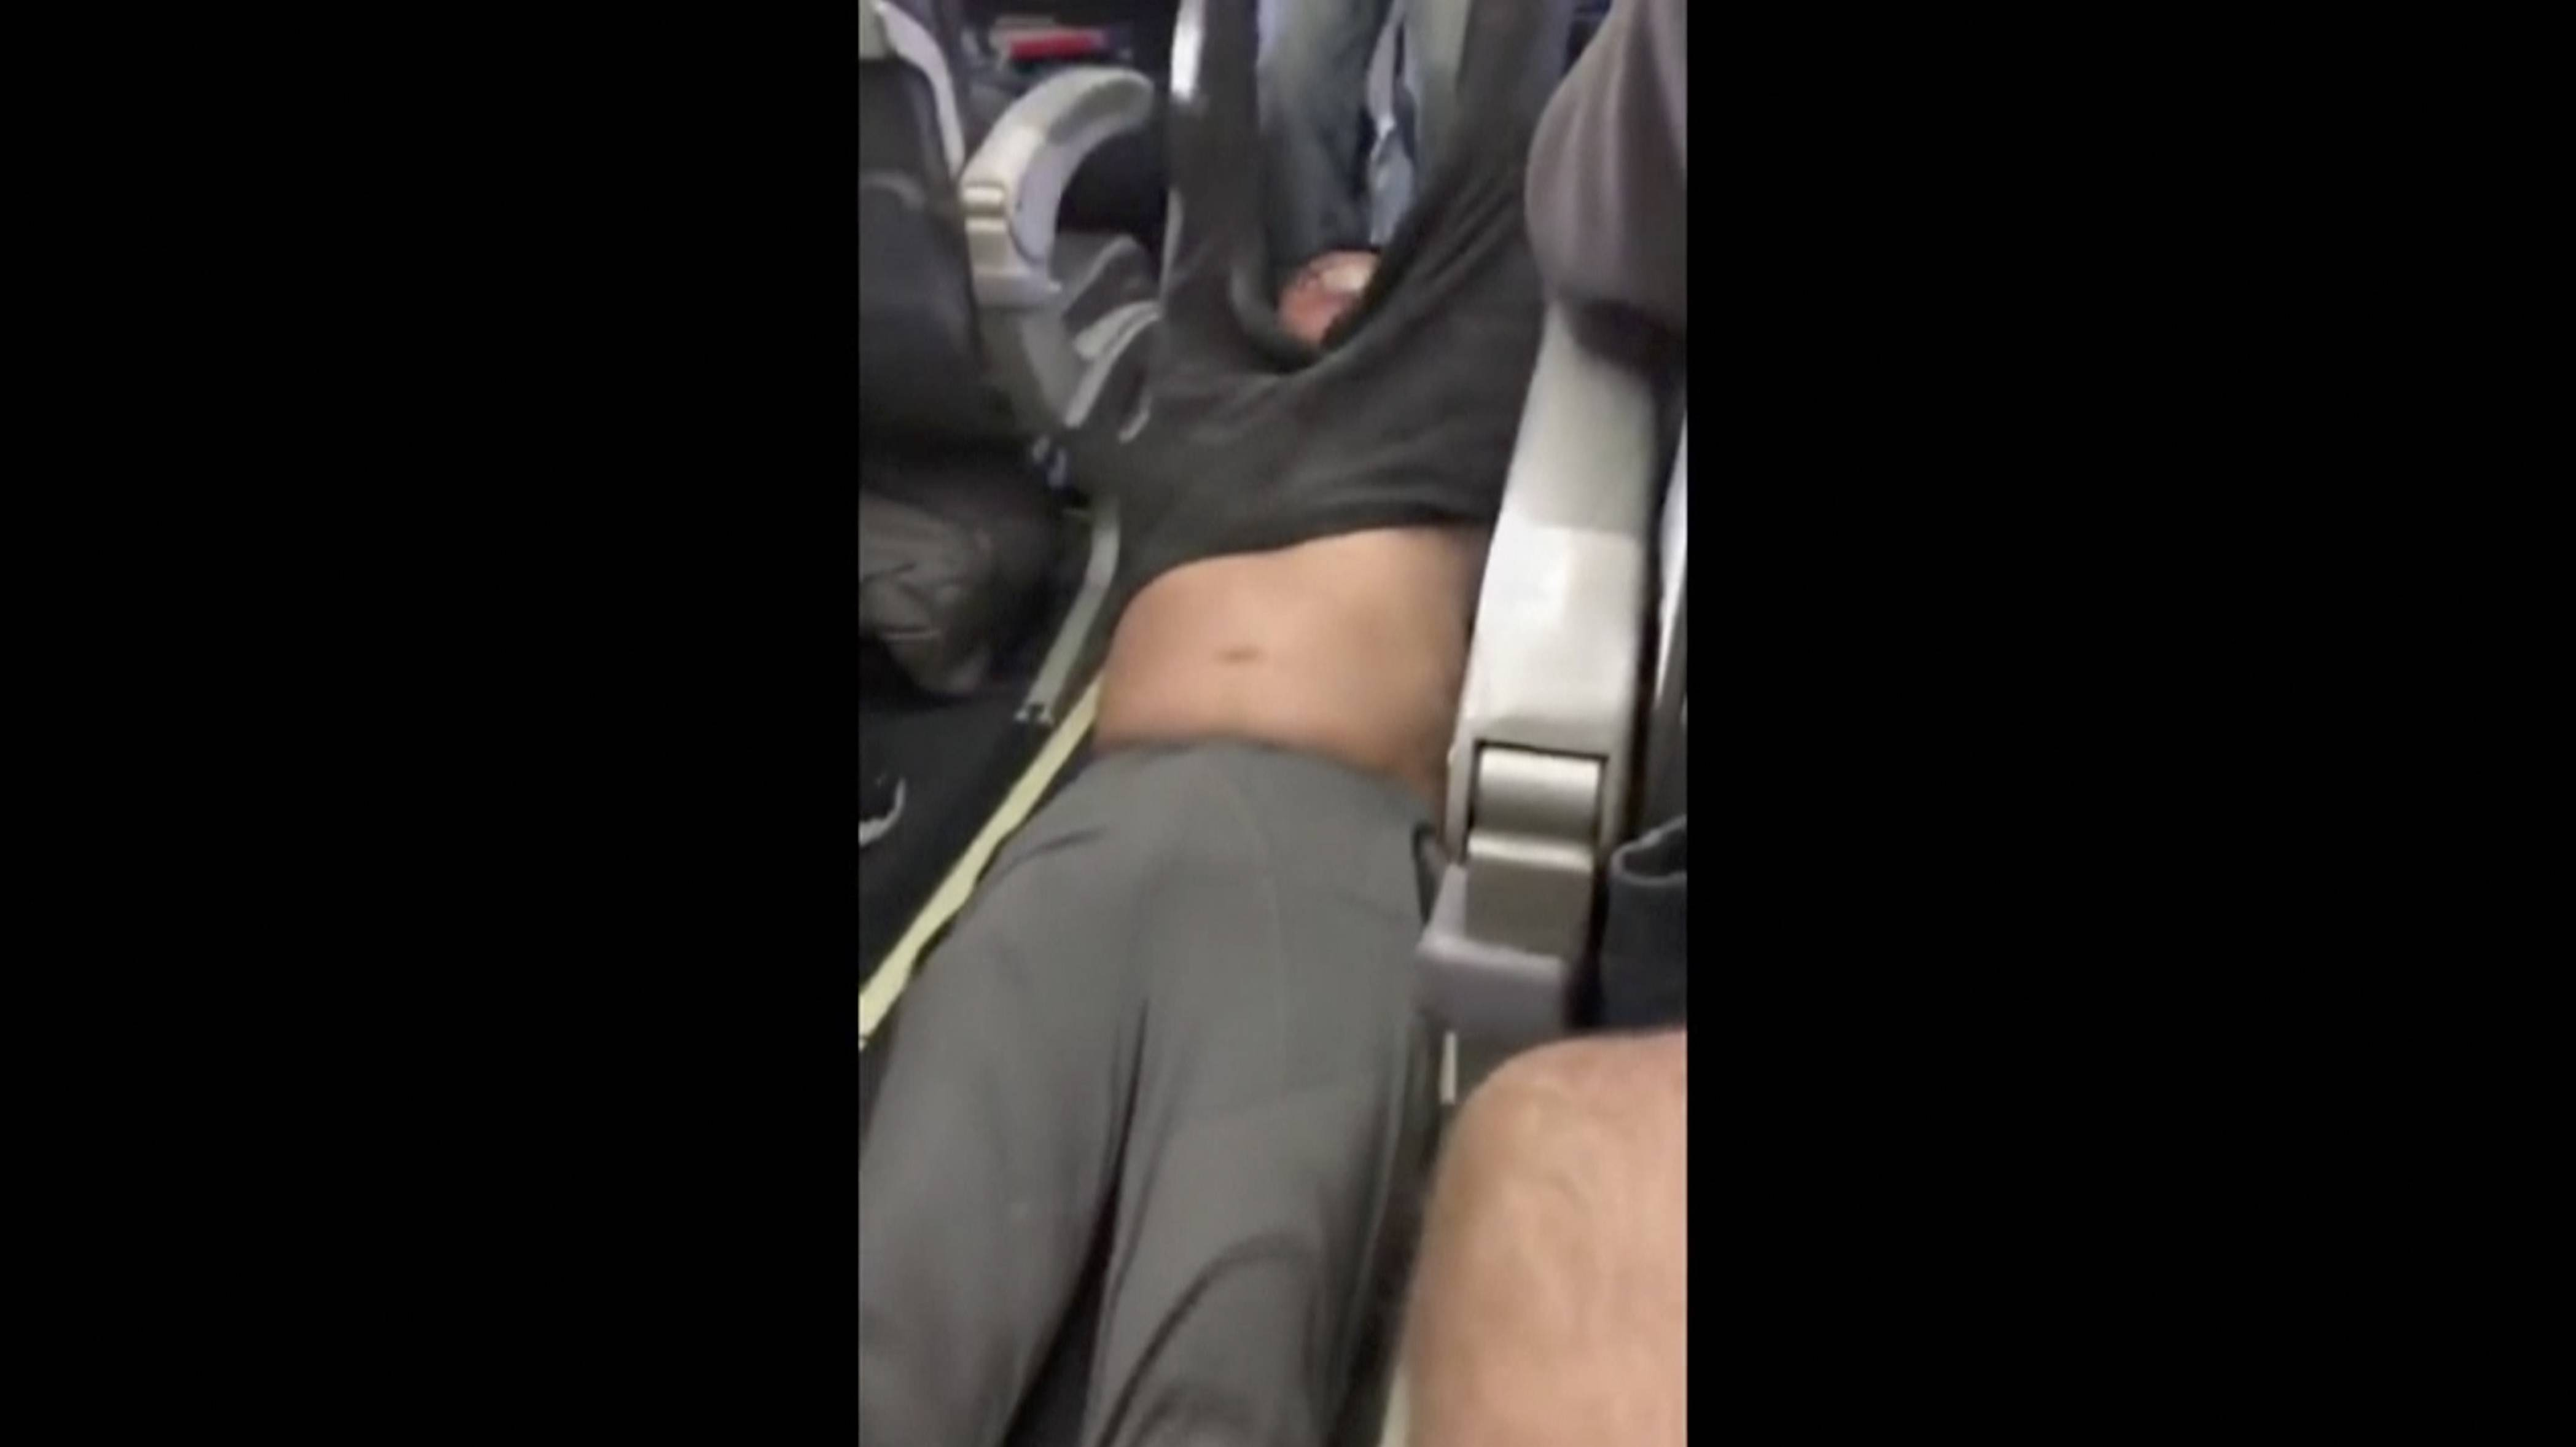 An image from a video by passenger Audra D. Bridges shows Dr. David Dao being dragged by the arms down the aisle of a United Airlines jet at O'Hare.